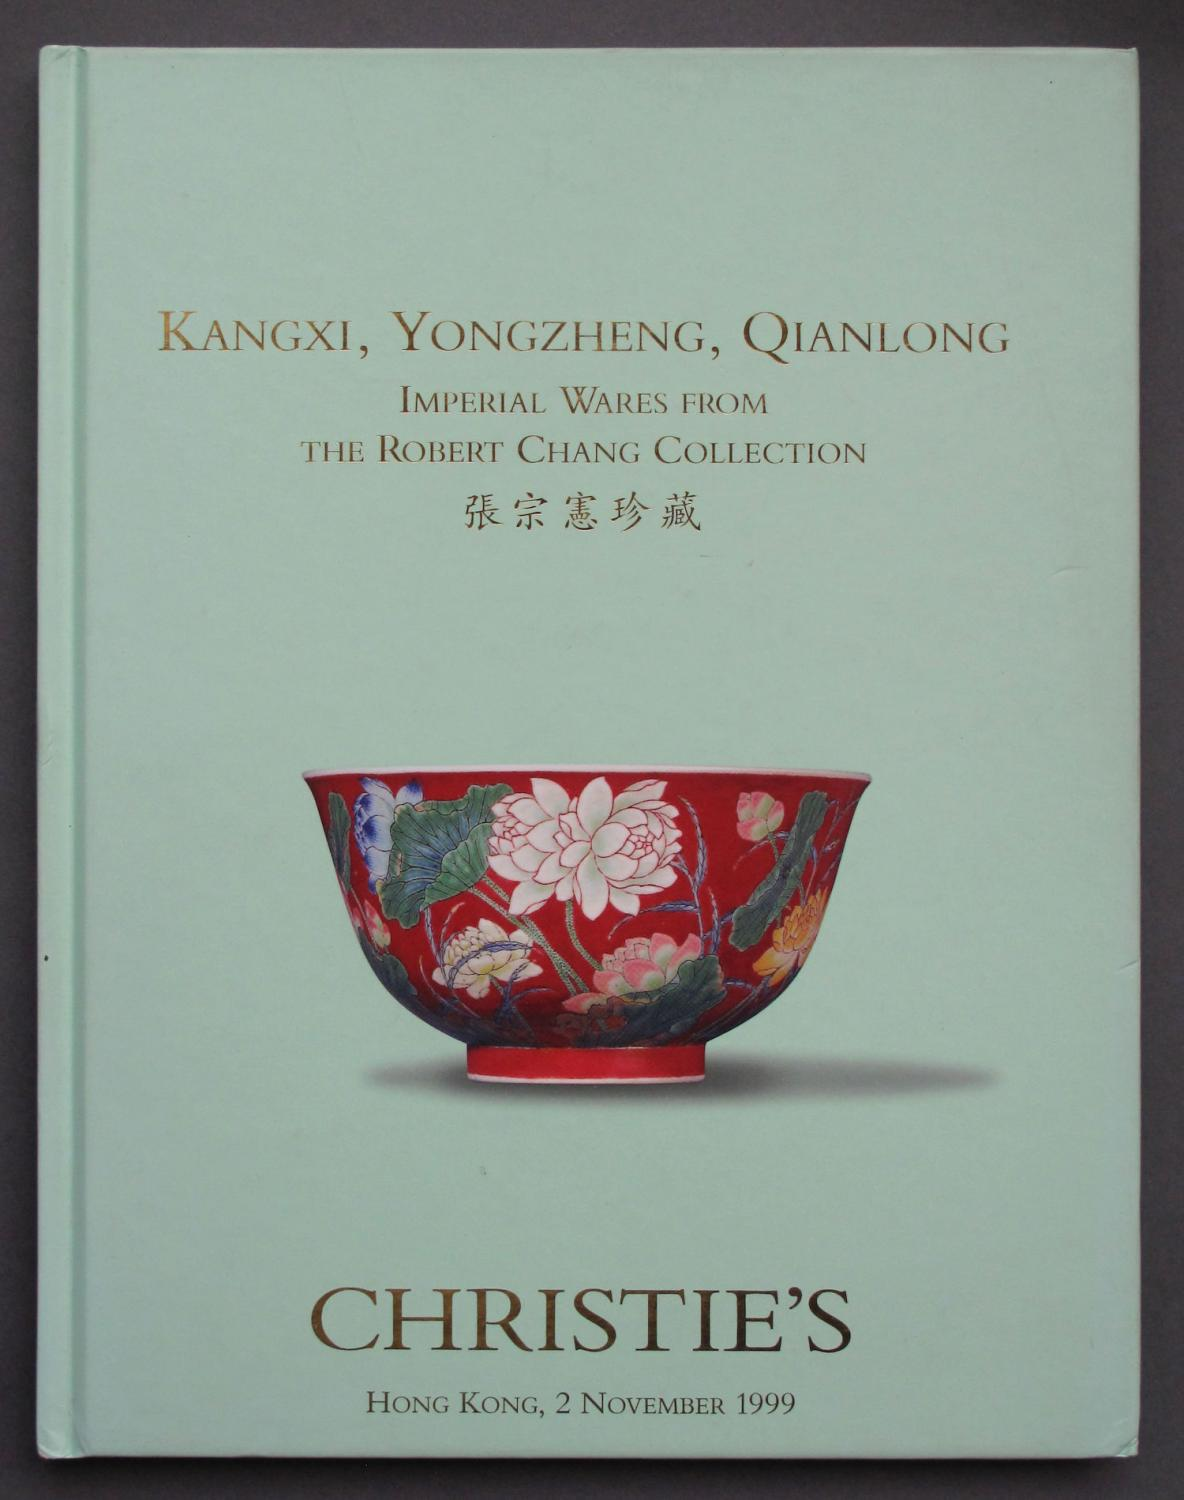 Christies catalogue Robert Chang collection